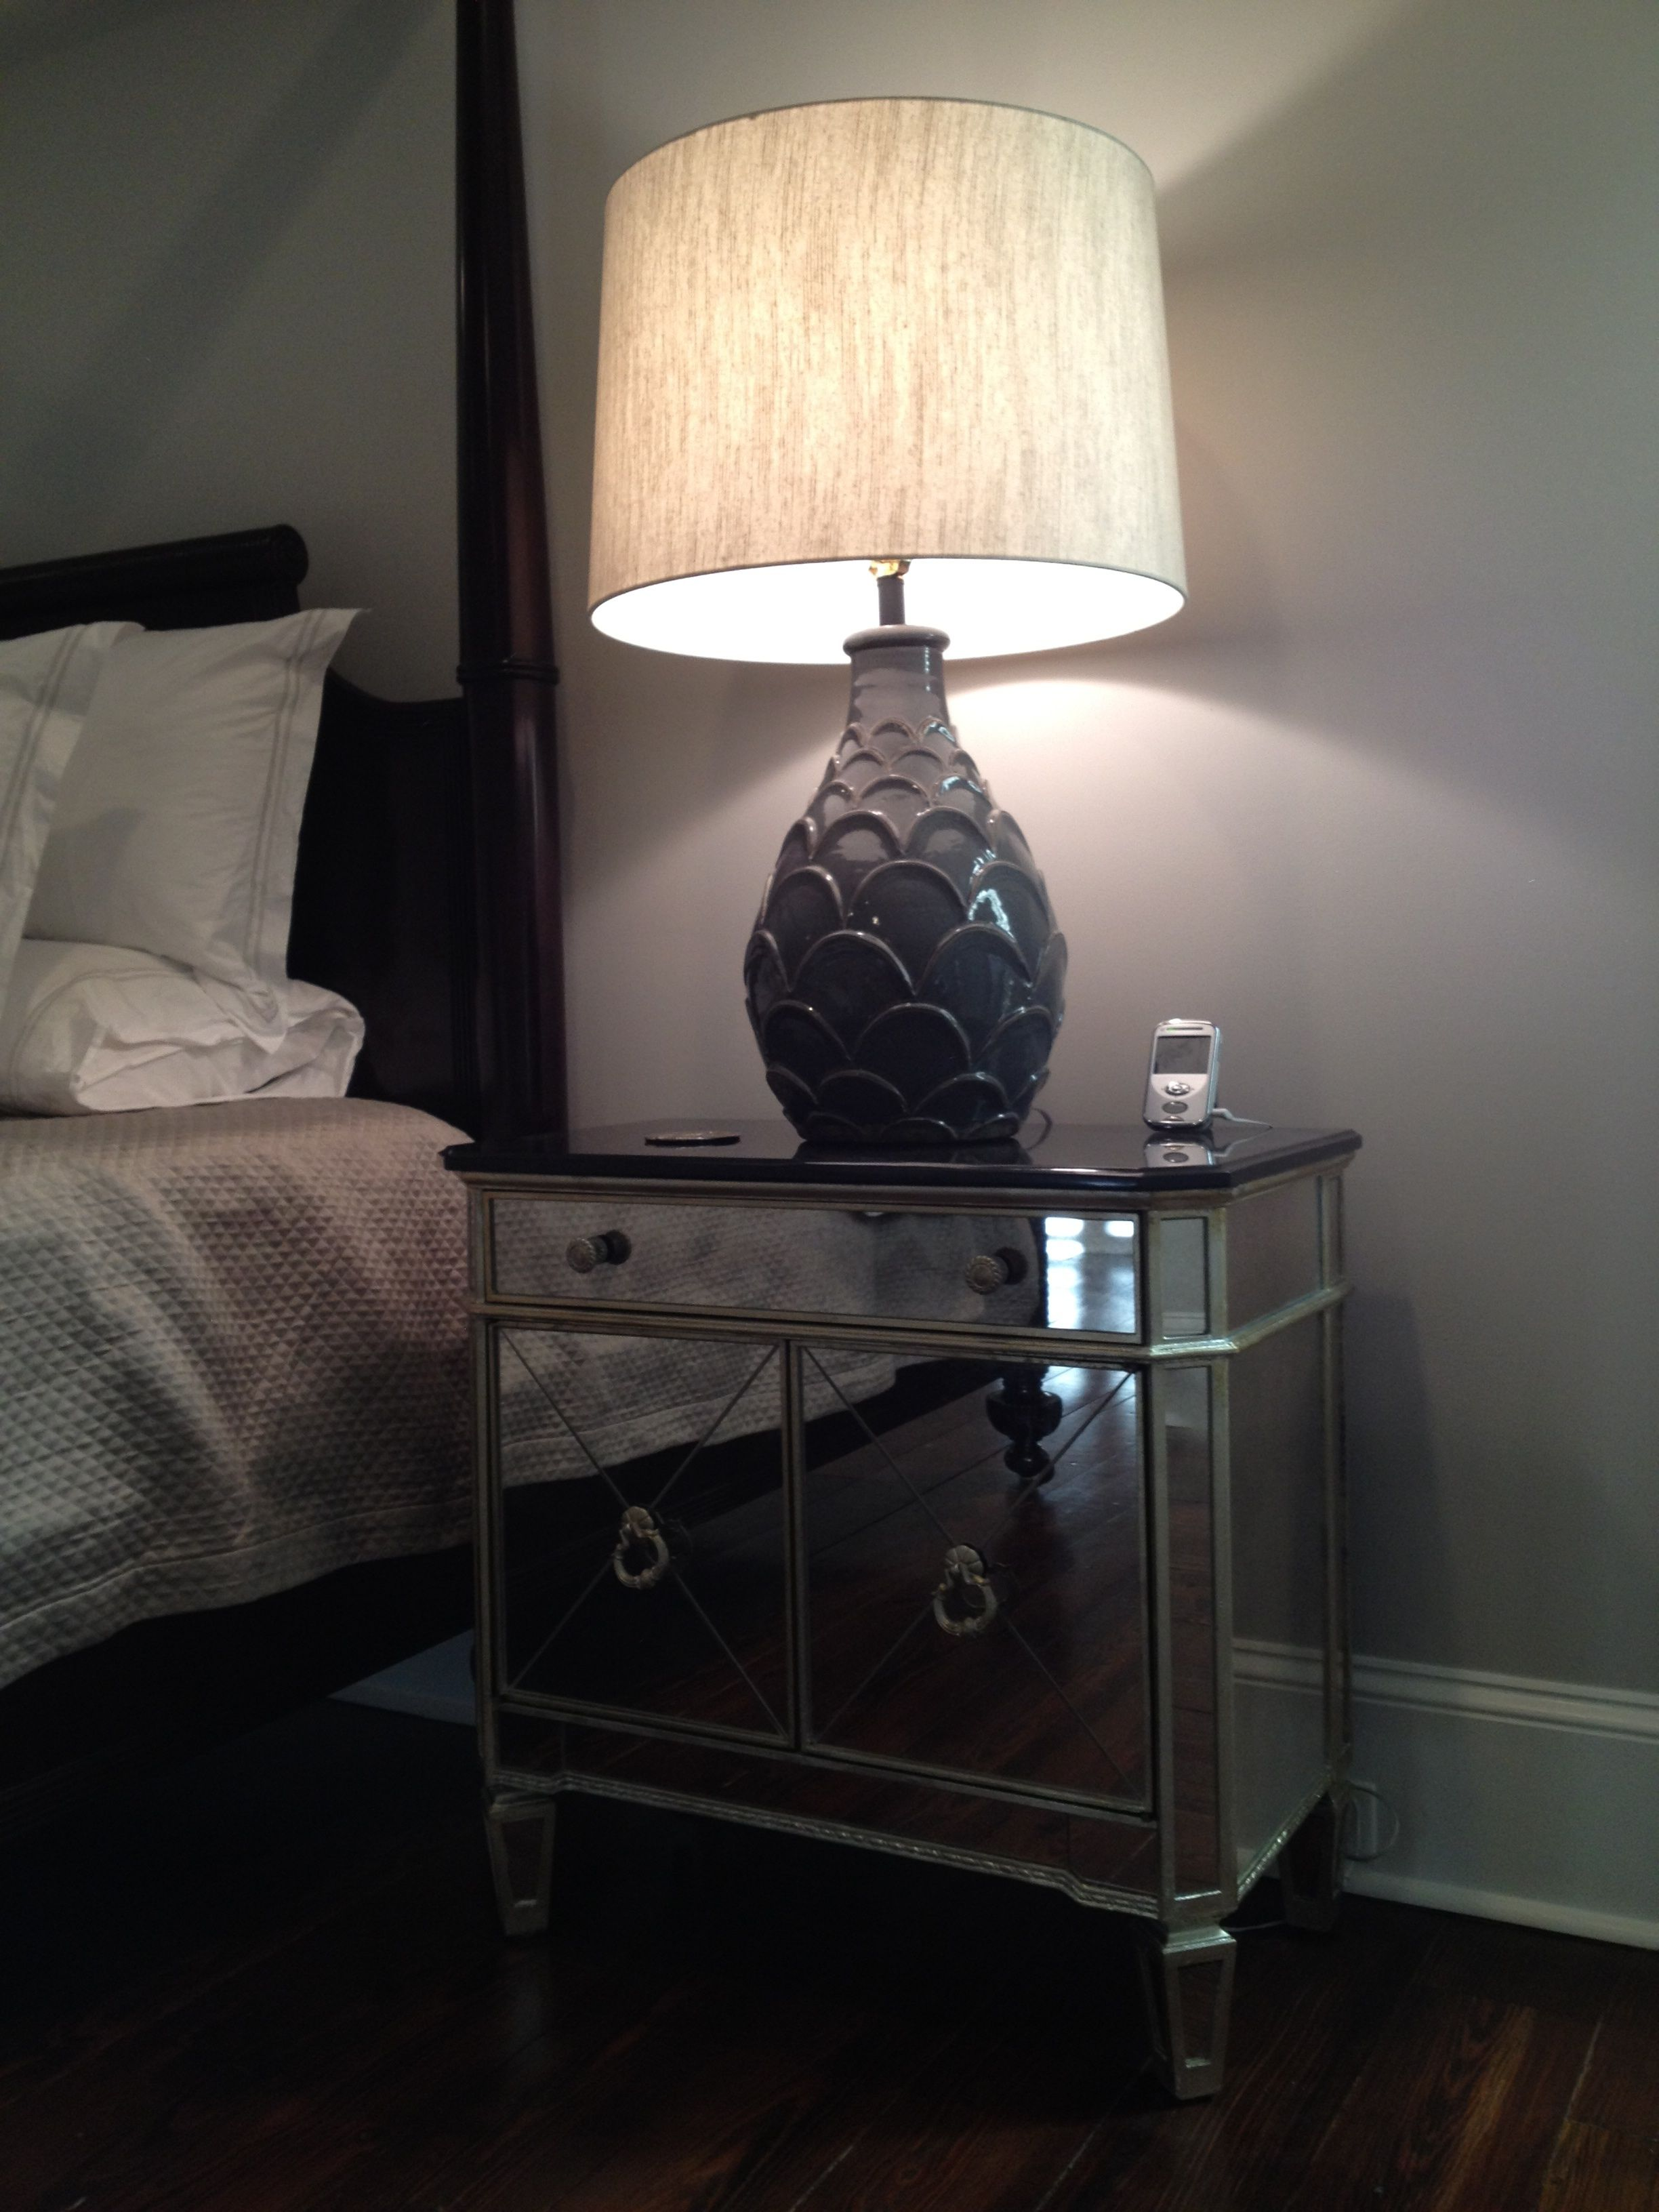 Light Grey Bedside Table: Mirrored Bedside Tables And New Lamps. The Oversized